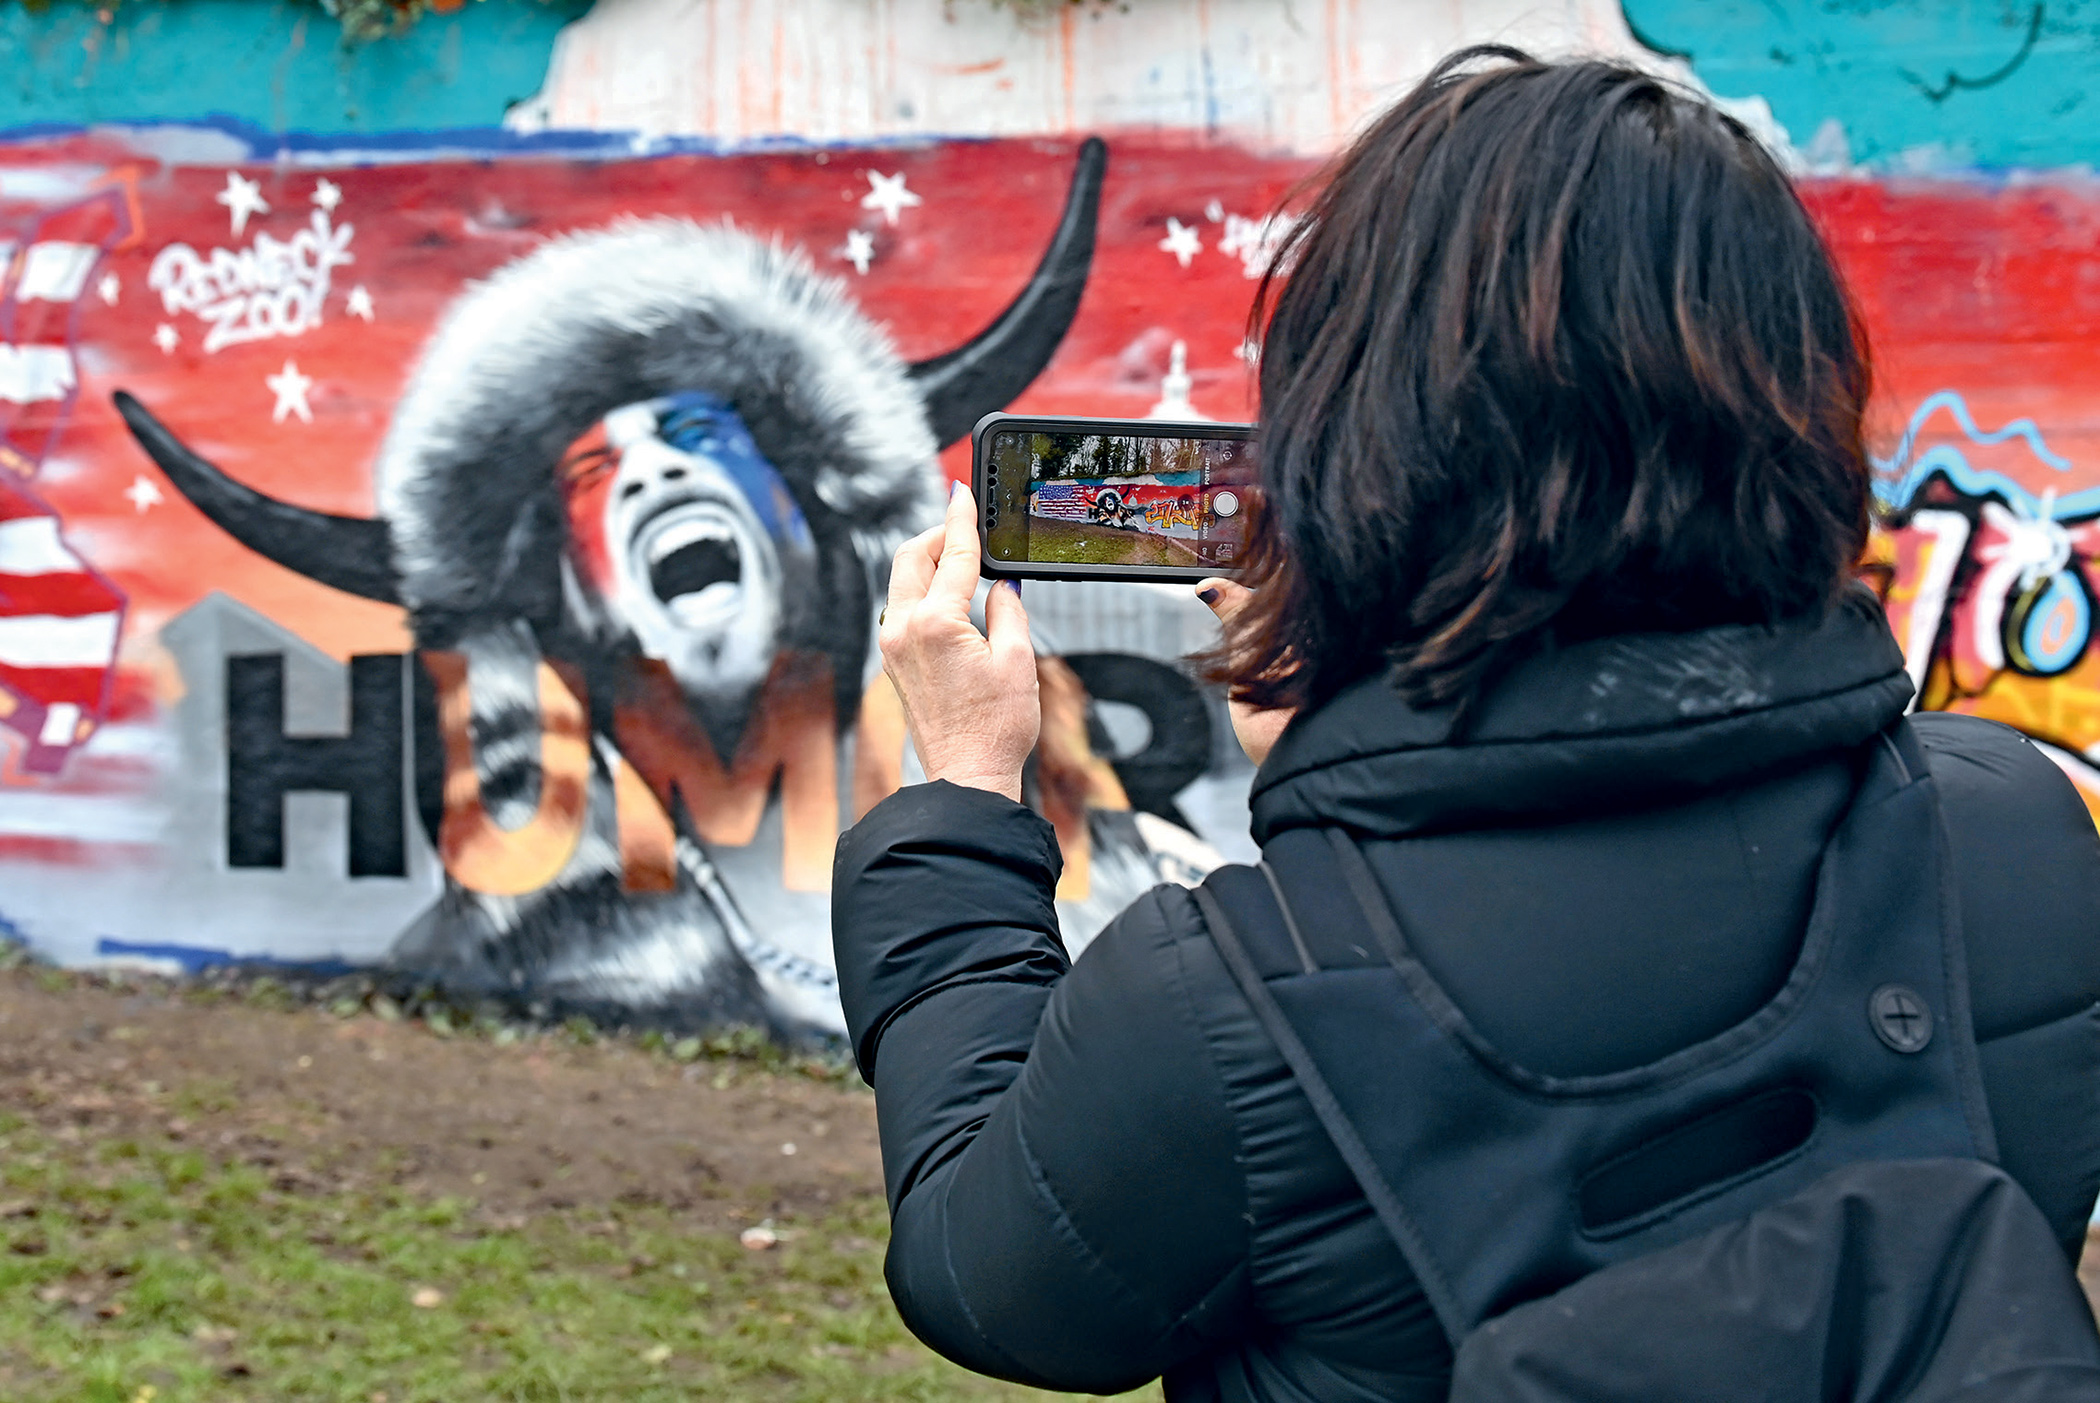 A mural featuring a pro-Trump protester, self-styled QAnon 'shaman' Jacob Chansley, appeared in Tunbridge Wells, UK, a few days after the storming of the US Congress in Washington on 6 January. Photo: Karwai Tang/Wireimage/Getty